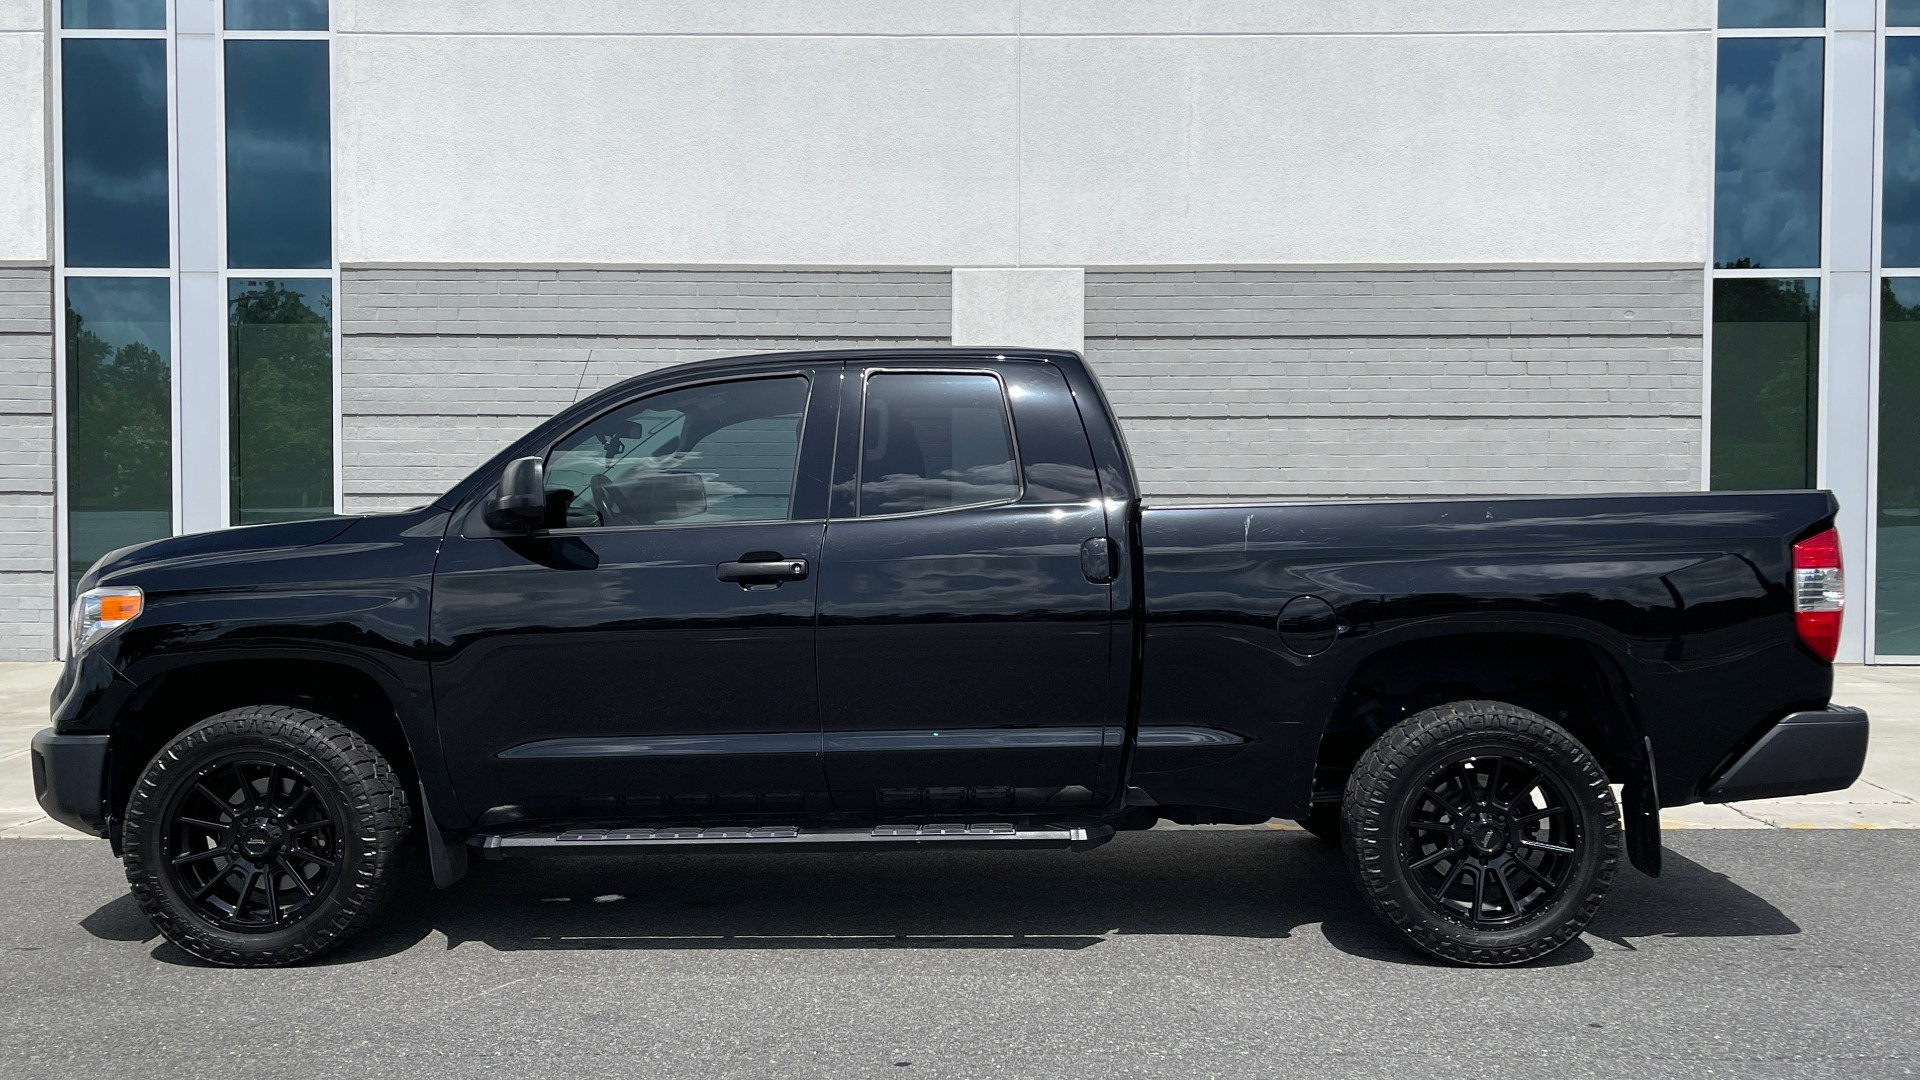 Used 2017 Toyota TUNDRA SR DOUBLECAB / 4WD / 6.5 BED / V8 / AUTO / REARVIEW for sale $33,995 at Formula Imports in Charlotte NC 28227 3